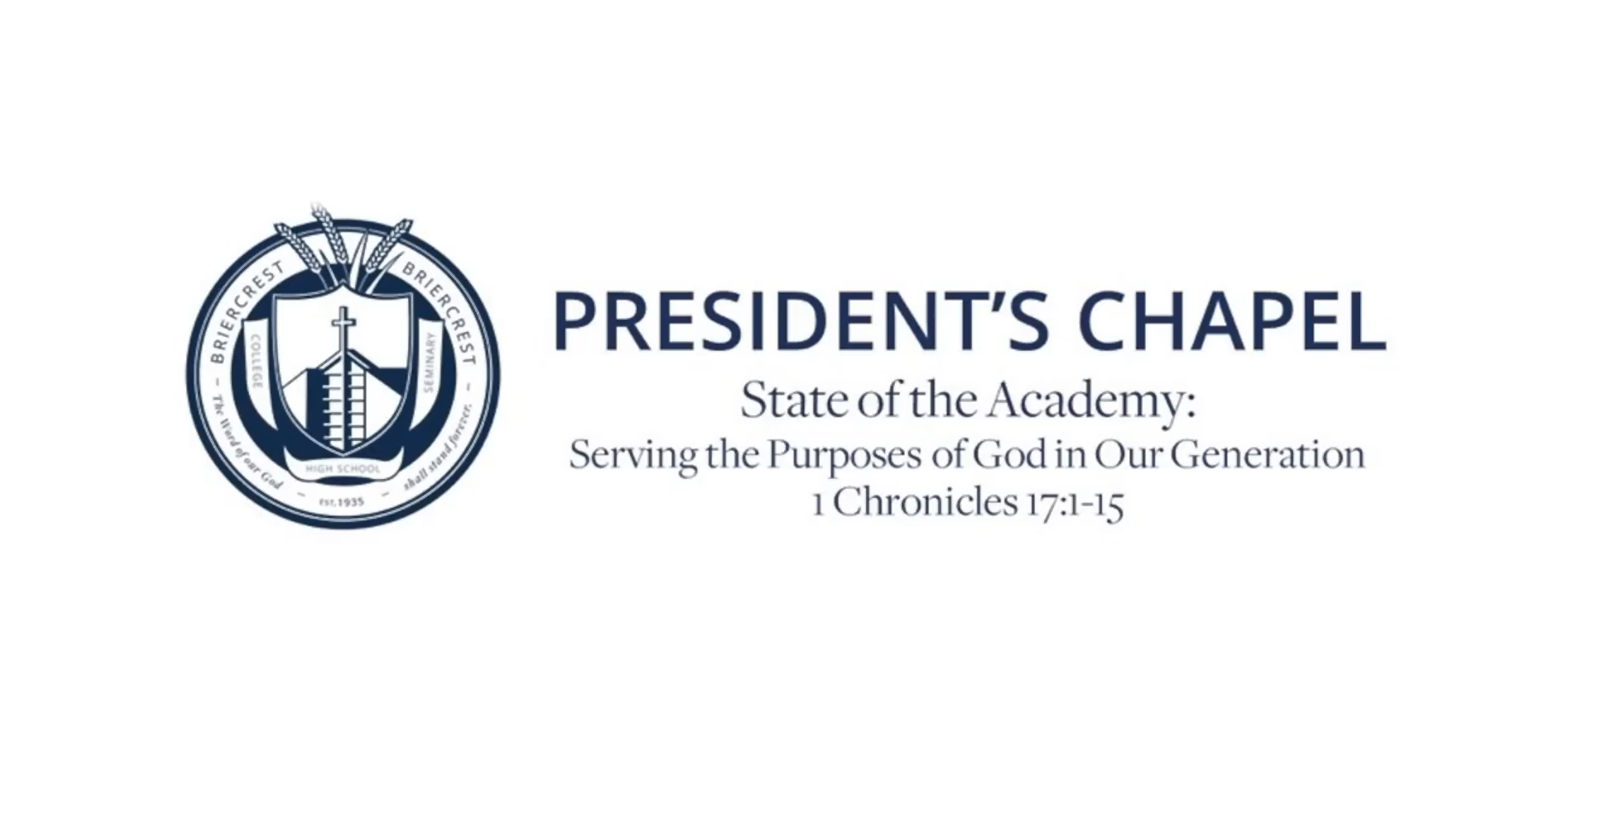 State of the Academy